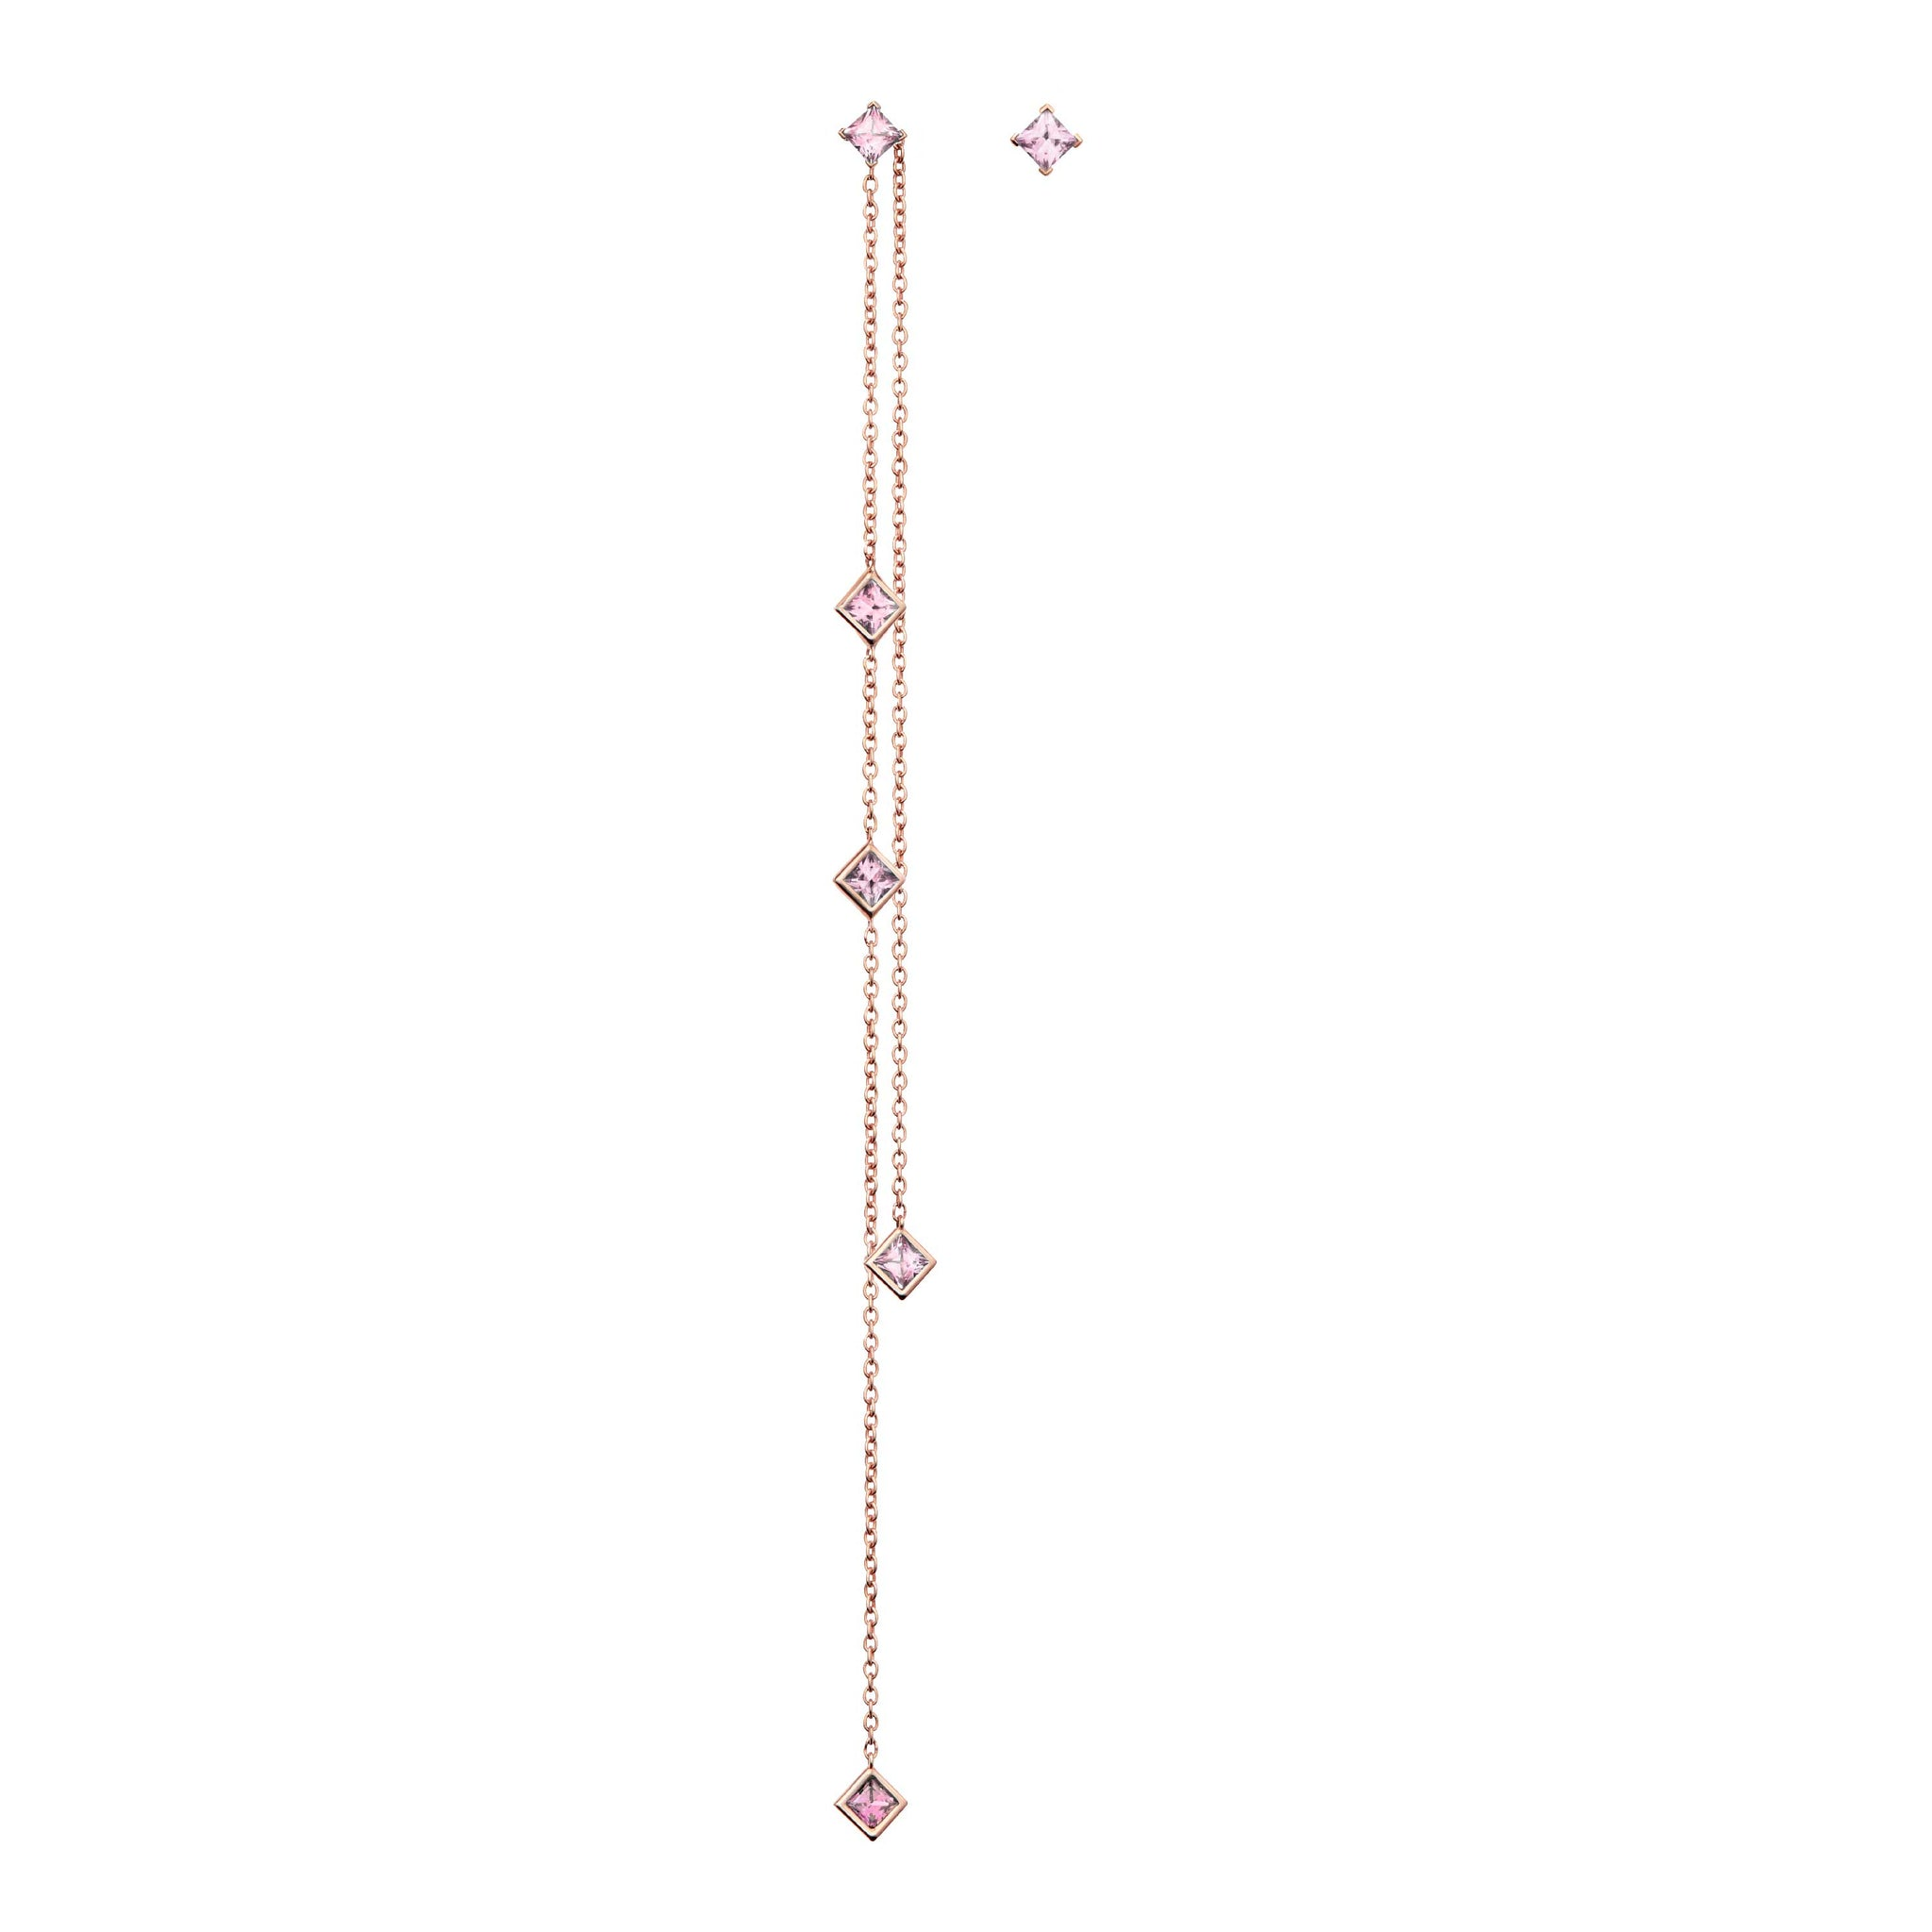 Diane Kordas Asymmetric Square Pink Sapphire Chain Earrings